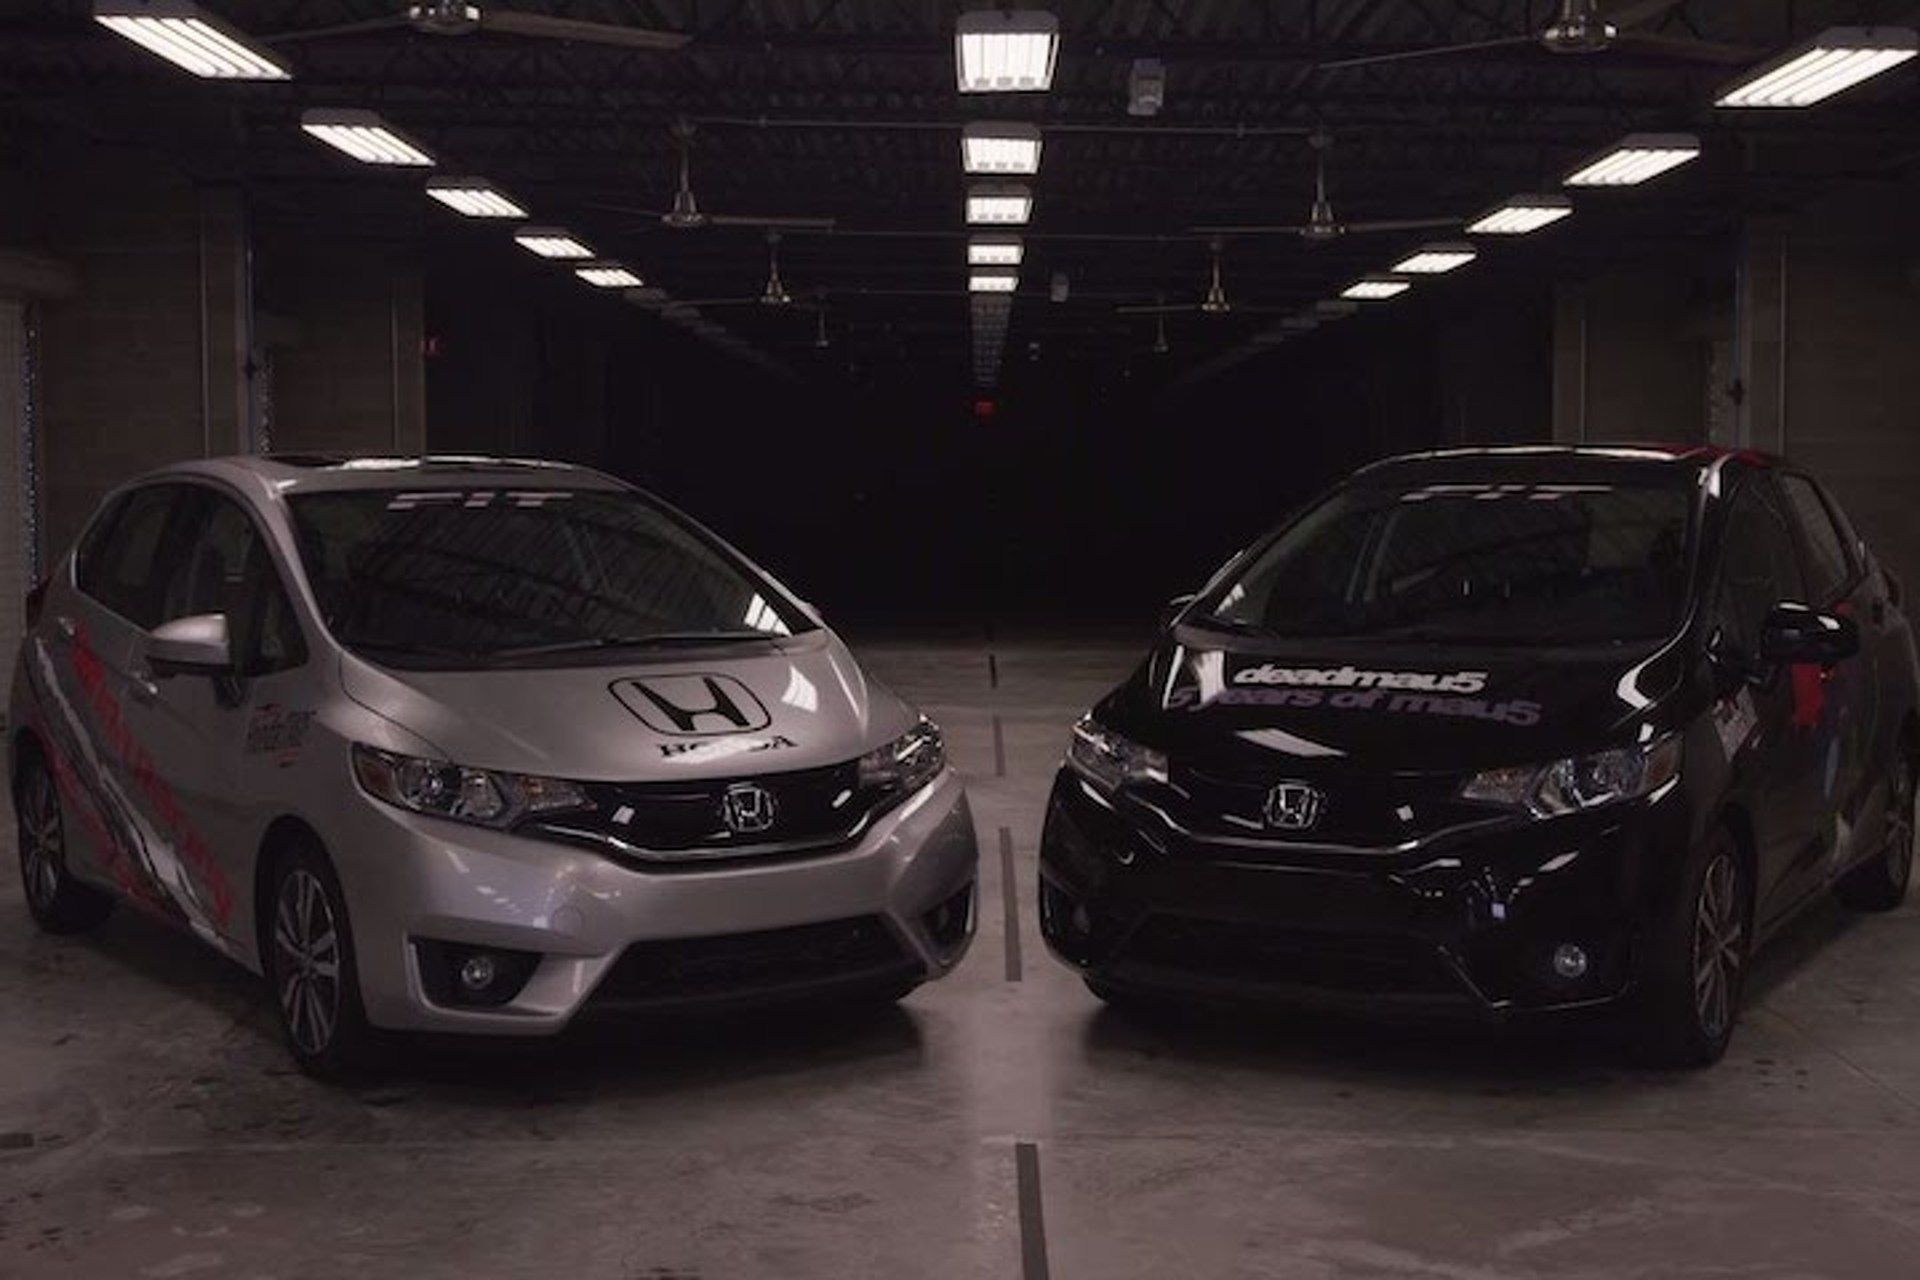 Watch DeadMau5 Race an IndyCar Driver in an Epic Honda Fit Battle